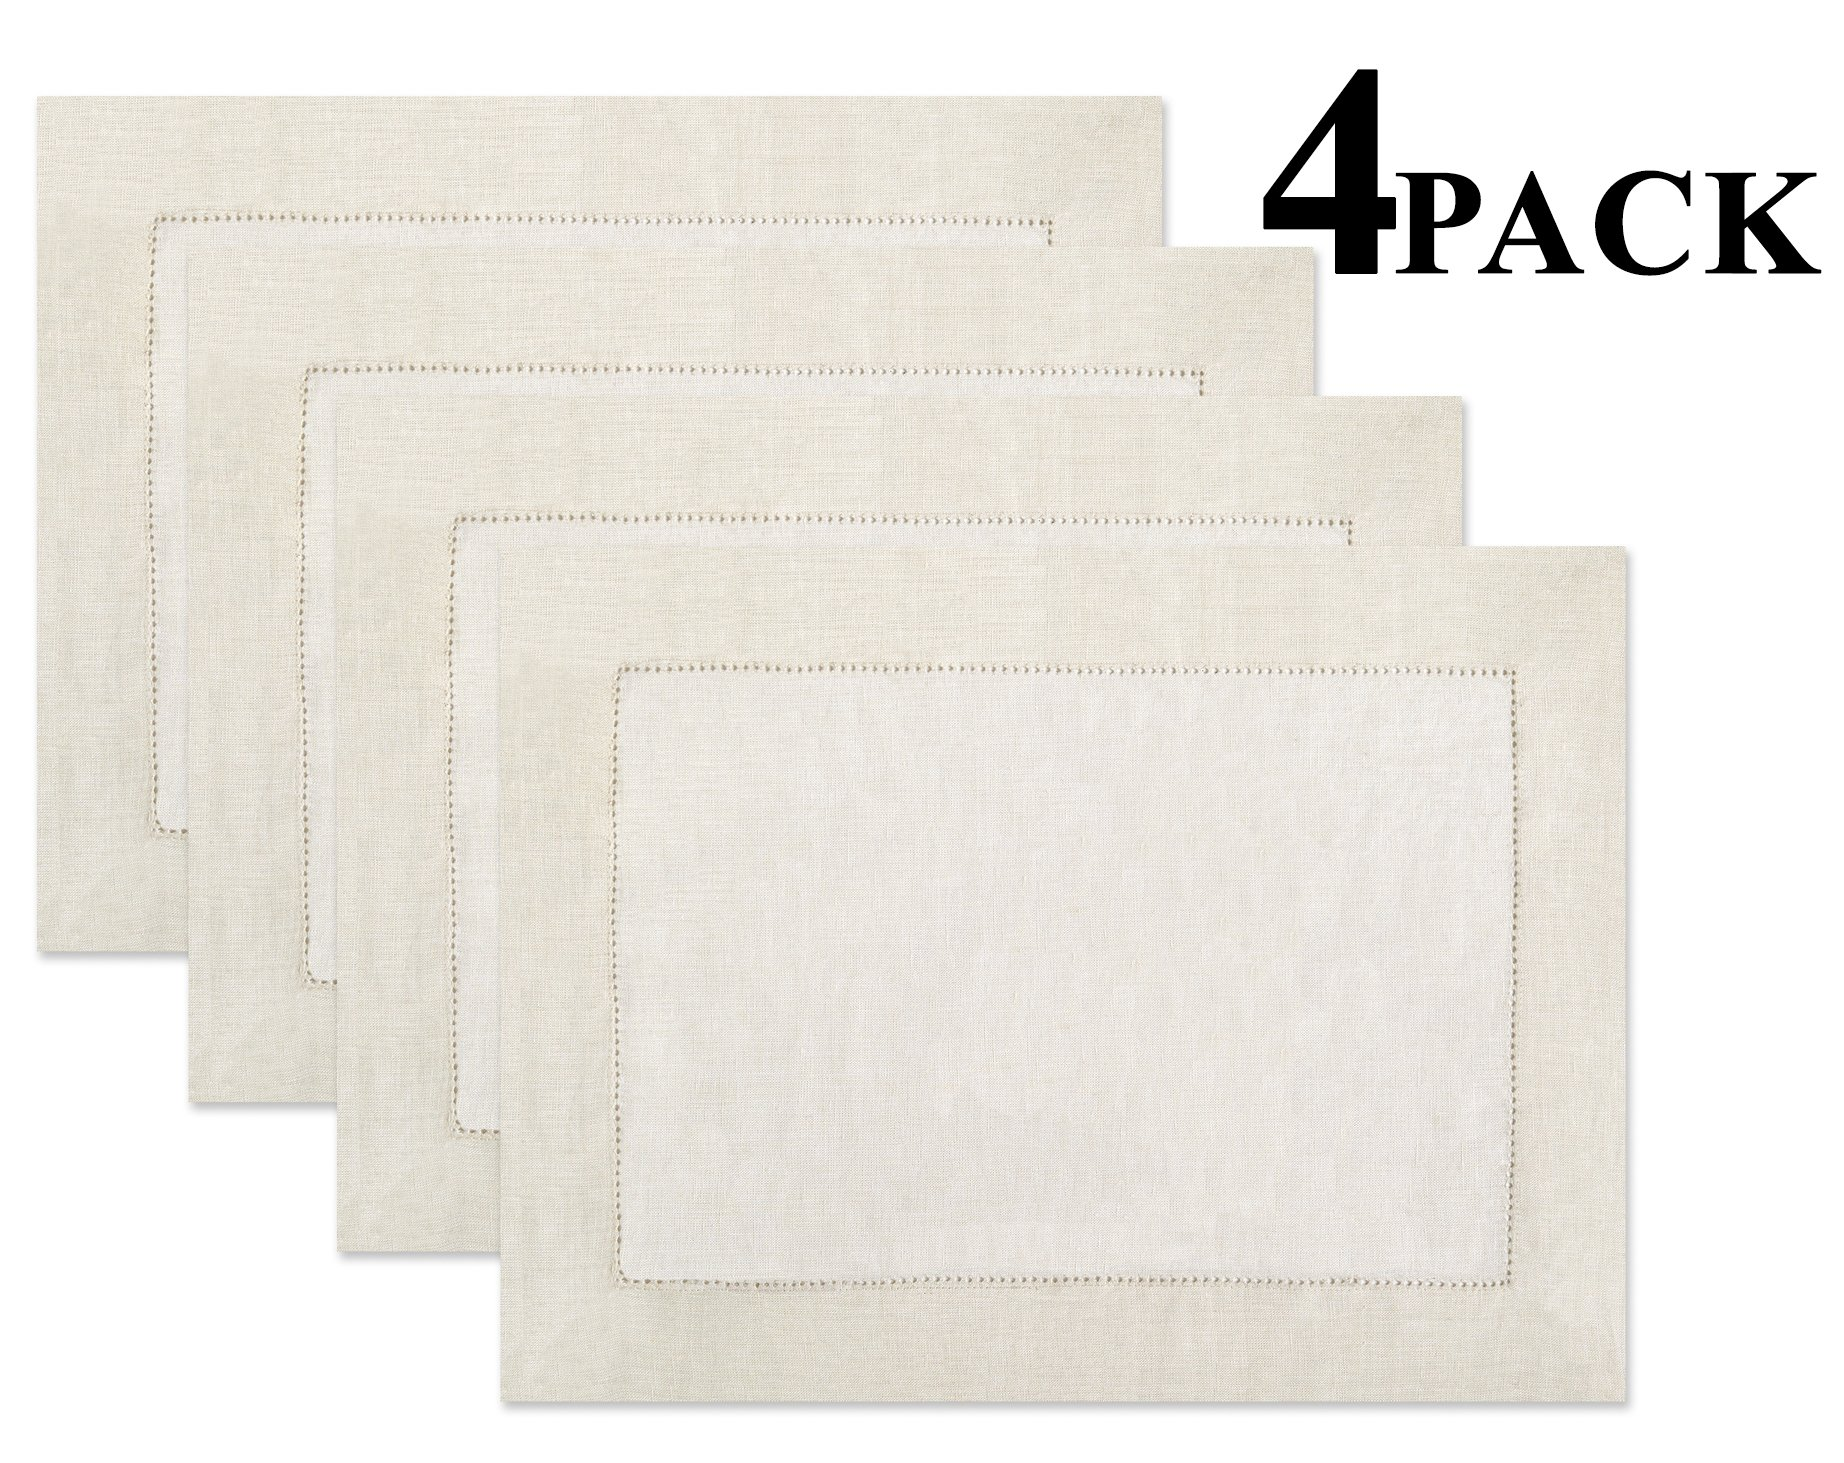 100% Linen Hemstitch Placemats - (Set of 4) Size 14x19 Ivory - Hand Crafted and Hand Stitched Placemats with Hemstitch detailing. The pure Linen fabric works well in both casual and formal settings